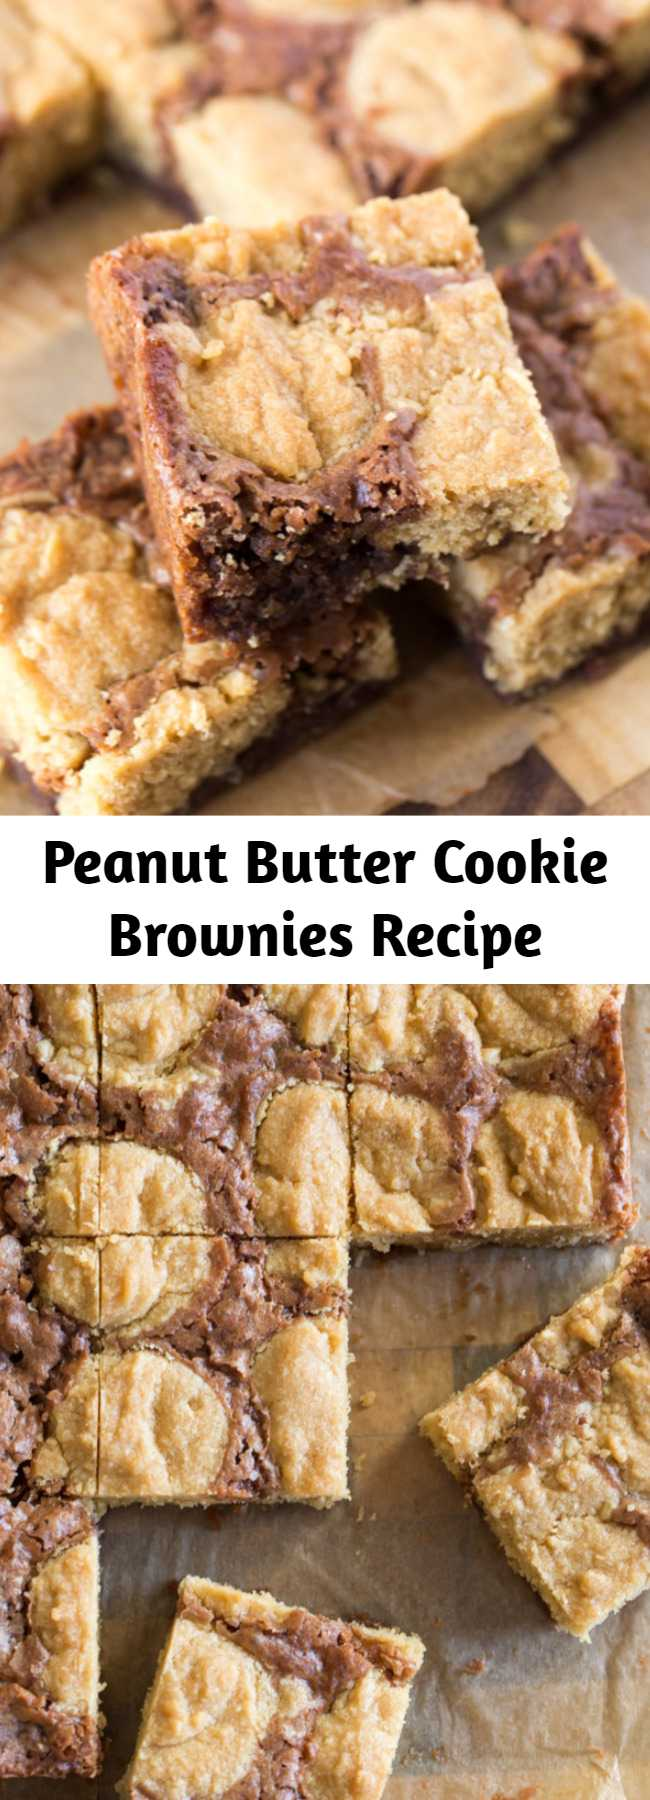 Peanut Butter Cookie Brownies Recipe - An easy homemade brownie batter studded with globs of peanut butter cookie dough for a chocolate peanut butter lovers dream come true. These little squares did NOT last long my friends.